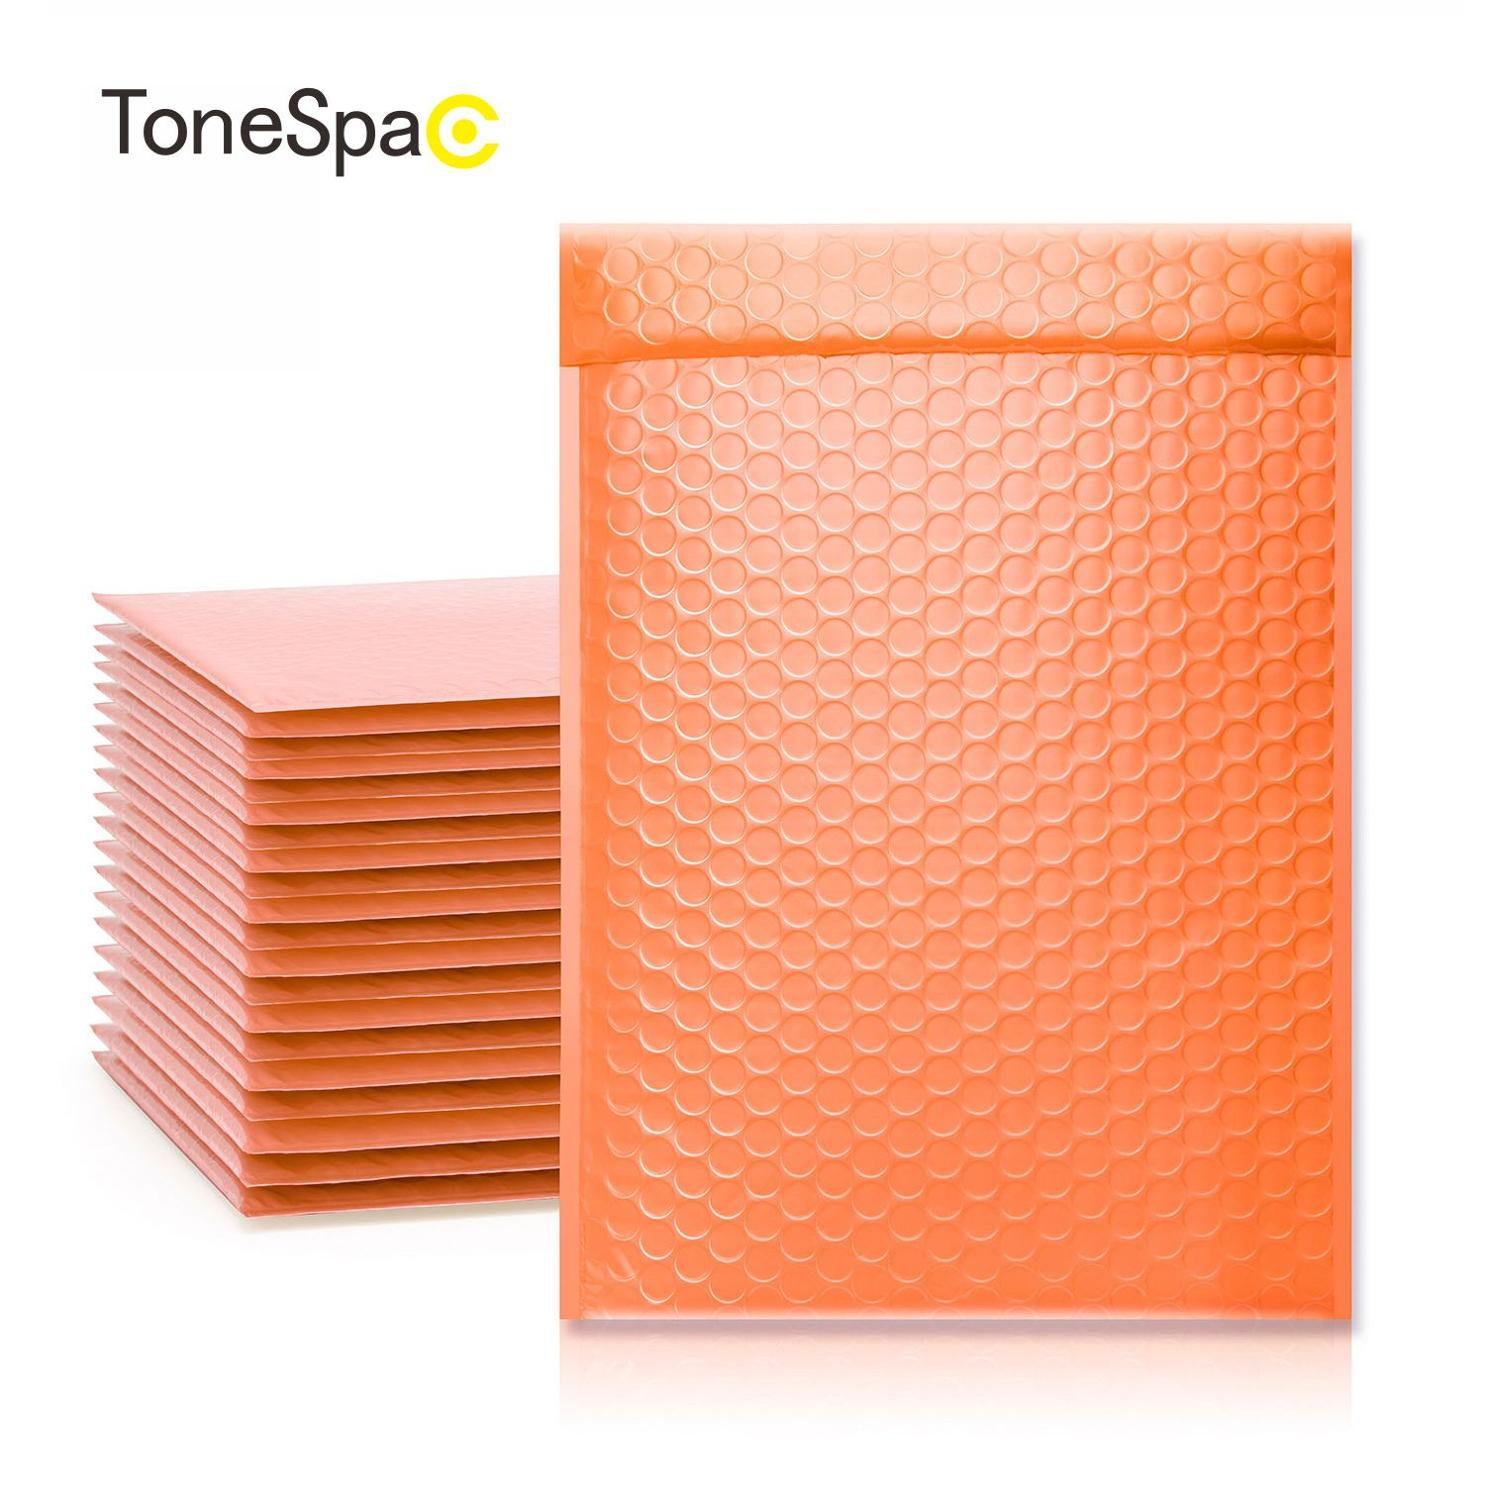 TONESPAC 260*320mm 25pcs Self Seal Shipping Envelope Packaging Poly Bubble Padded Mailer Waterproof Express Packaging Orange